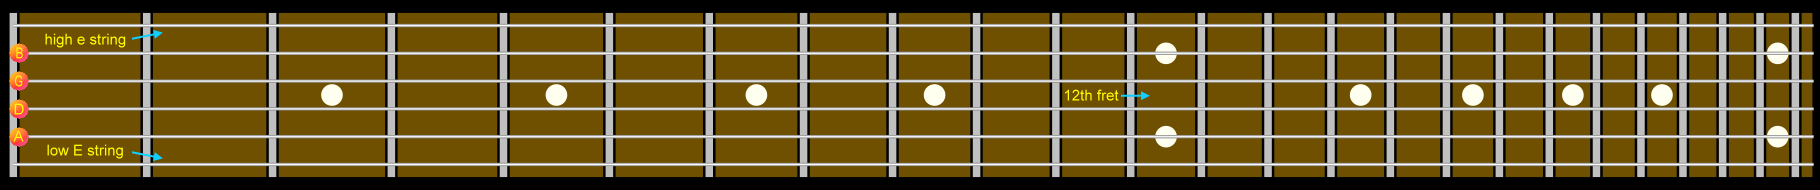 Fileguitar Fretboard Open Strings Diagramg Wikimedia Commons